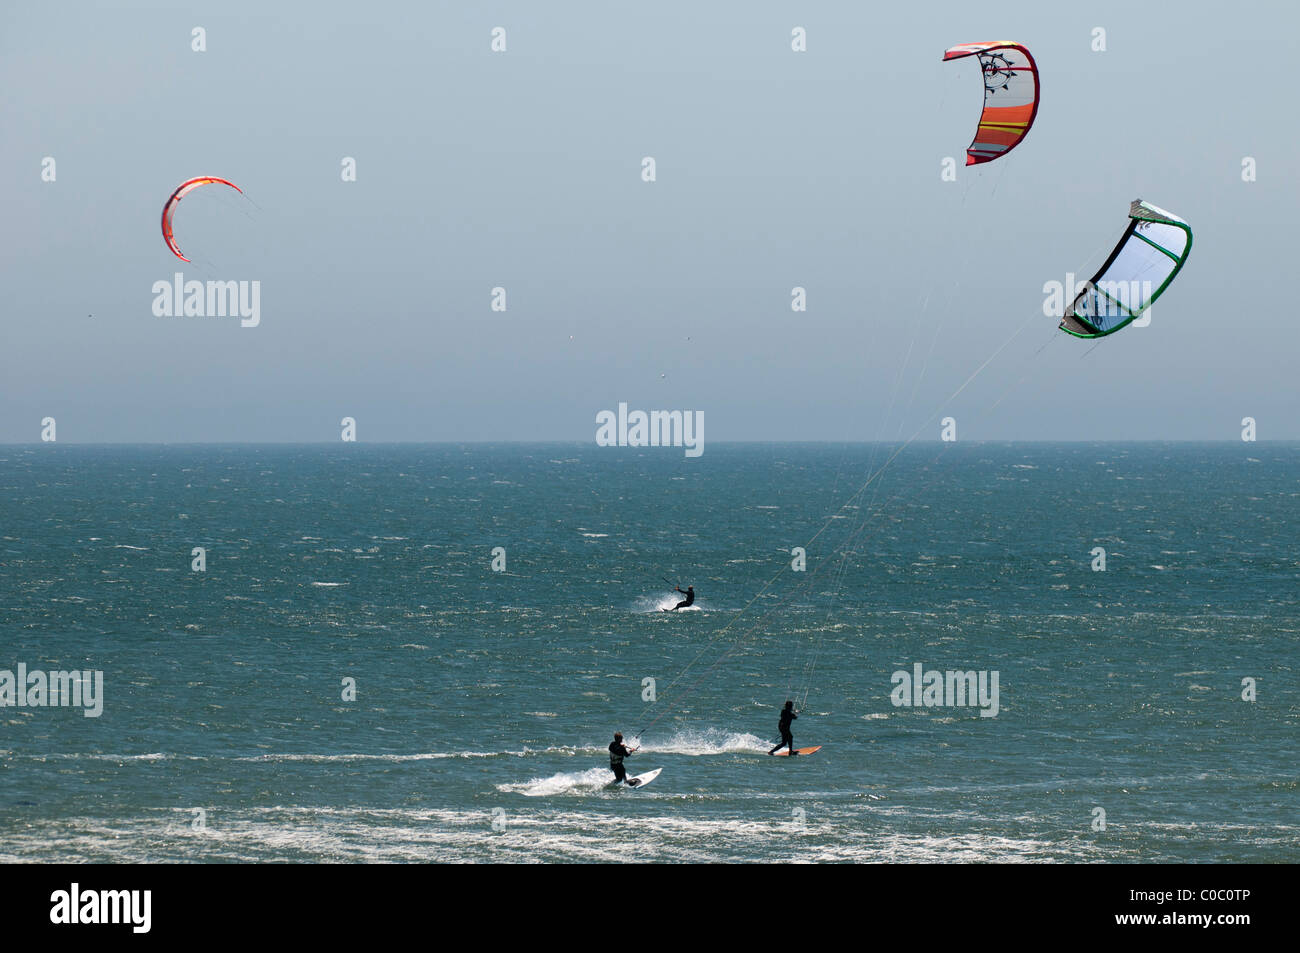 Kitesurfing at Punto San Carlos, Baja California, Mexico - Stock Image